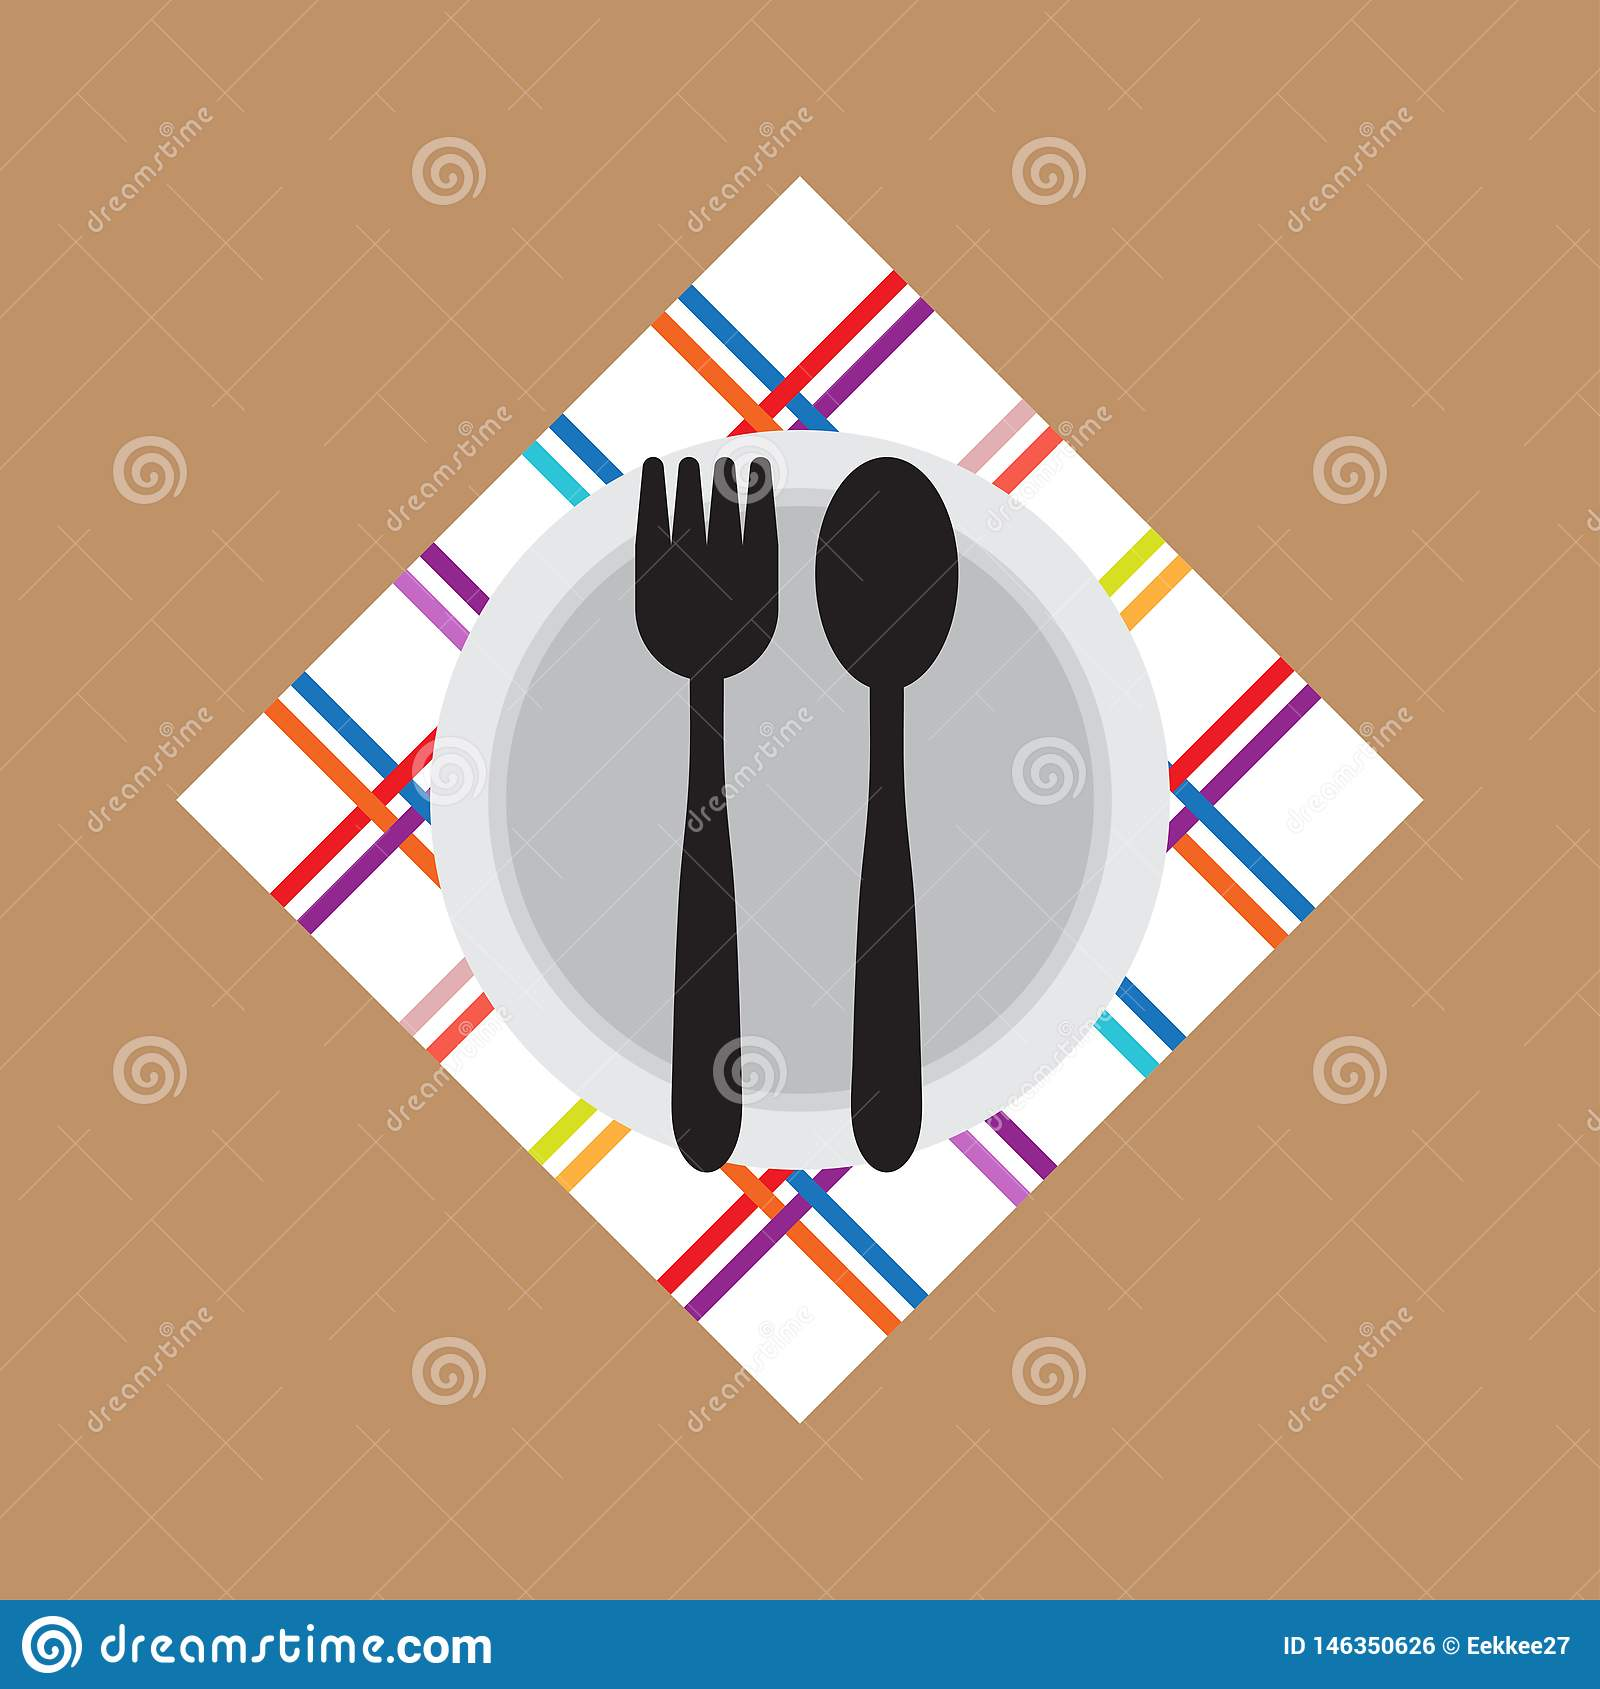 Fork Spoon bowl icon flat style. Vector. Illustration.